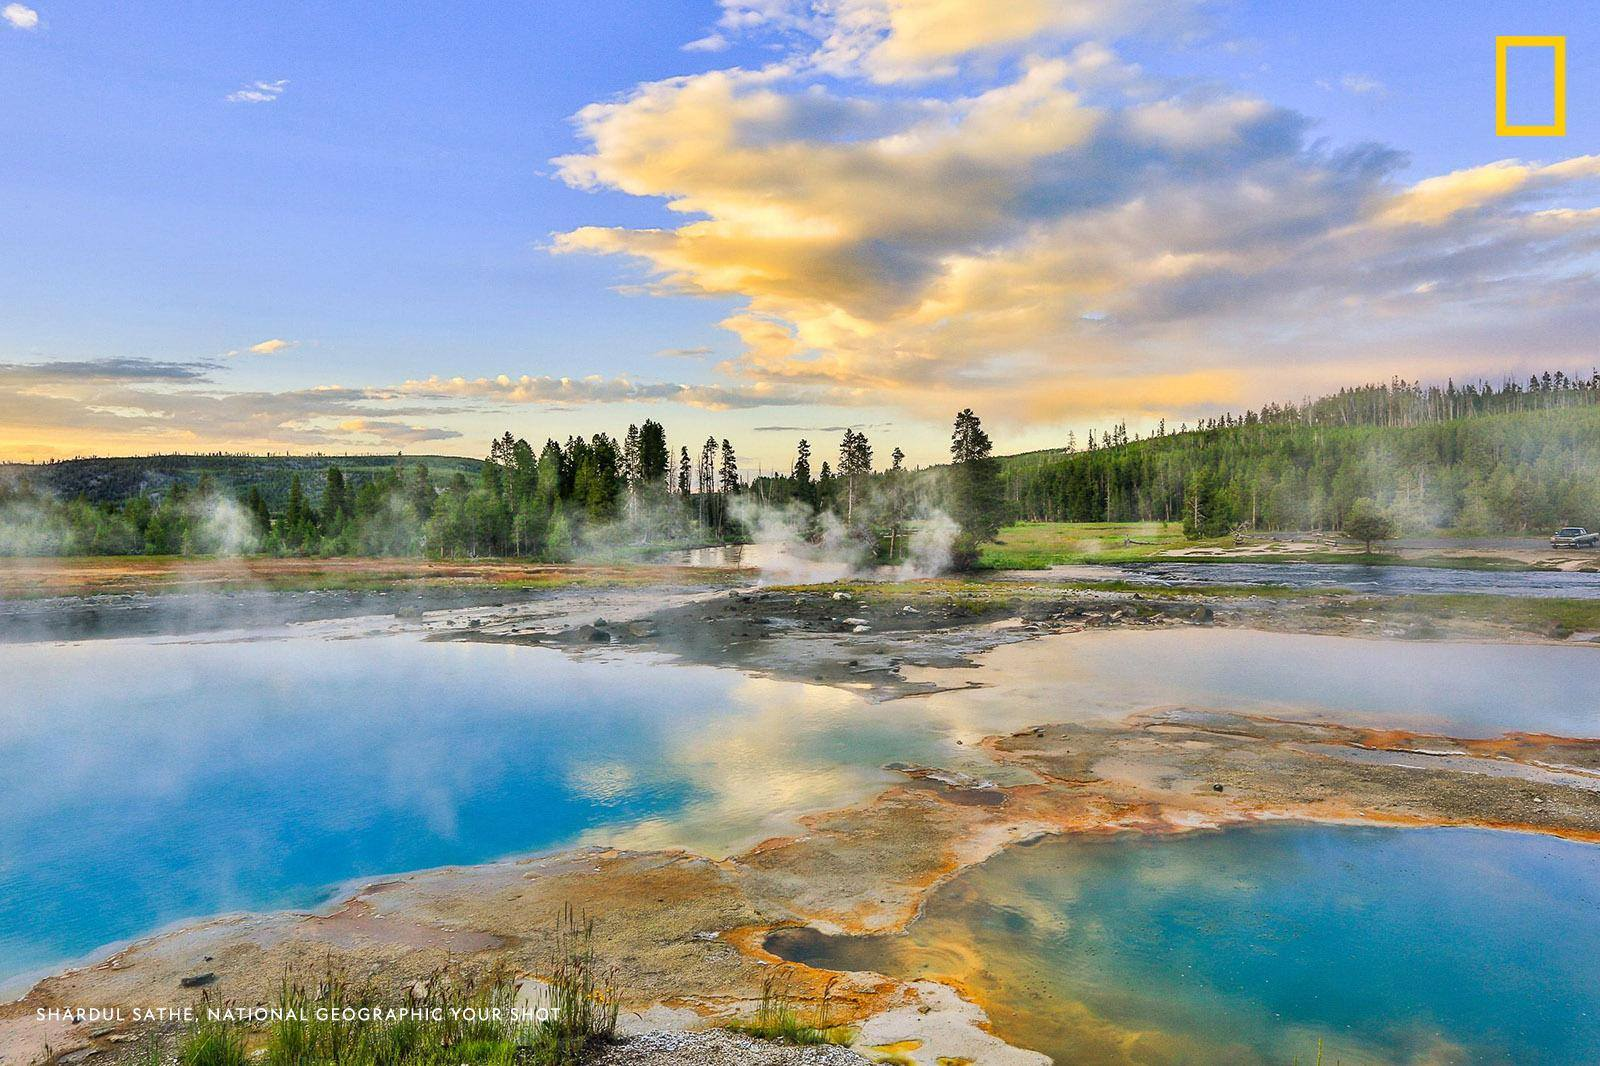 """Yellowstone—the most colorful national park I have seen,"" writes Your Shot photographer Shardul Sathe. ""We arrived at this basin before sunset to watch the deep blue acidic pool and the magic of the golden hour."" https://on.natgeo.com/2KtxPZW"